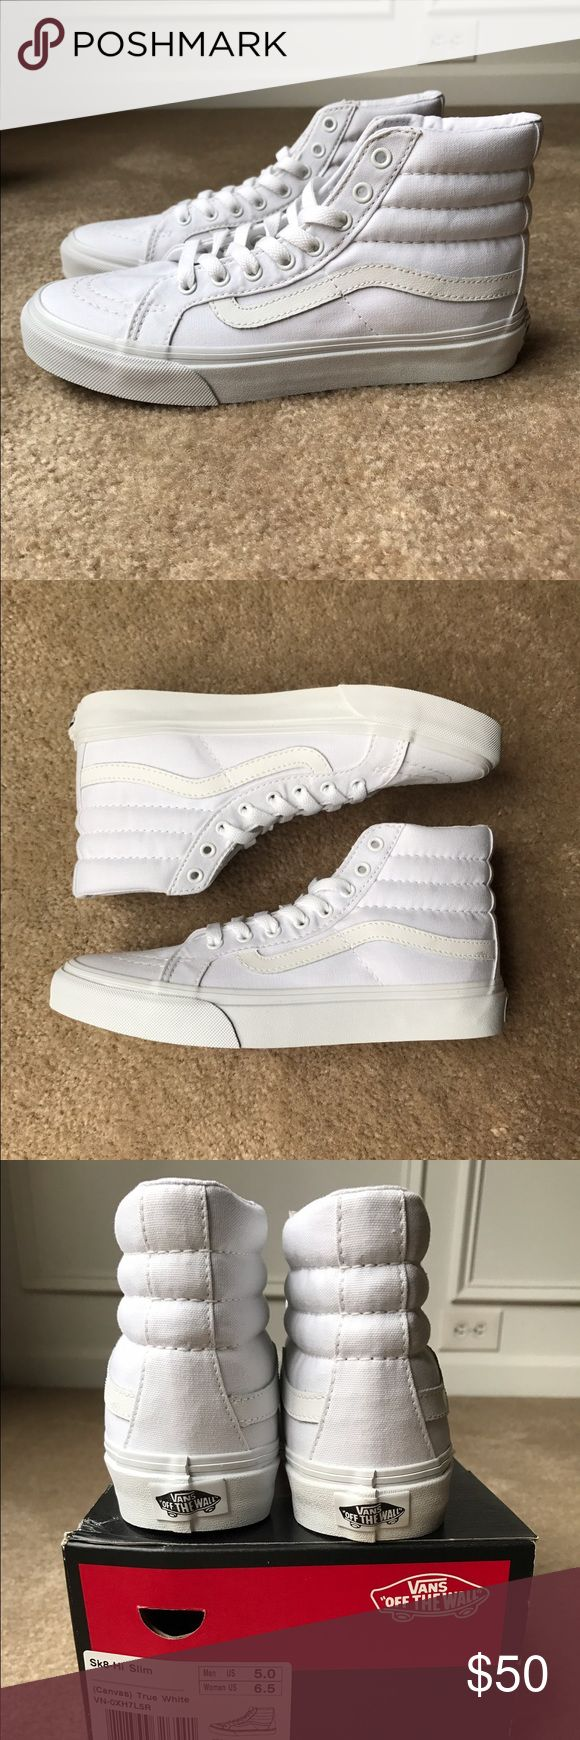 Vans Sk8-Hi Slim - True White - Canvas Brand New!!! Never Worn!!! Has a few tiny spots on them don't know where they came from. (As seen in Pic.) Comes with original shoe box. (Size:6.5 Women/5.0 Men) 🚫No Trades🚫 No Modeling. Vans Shoes Sneakers